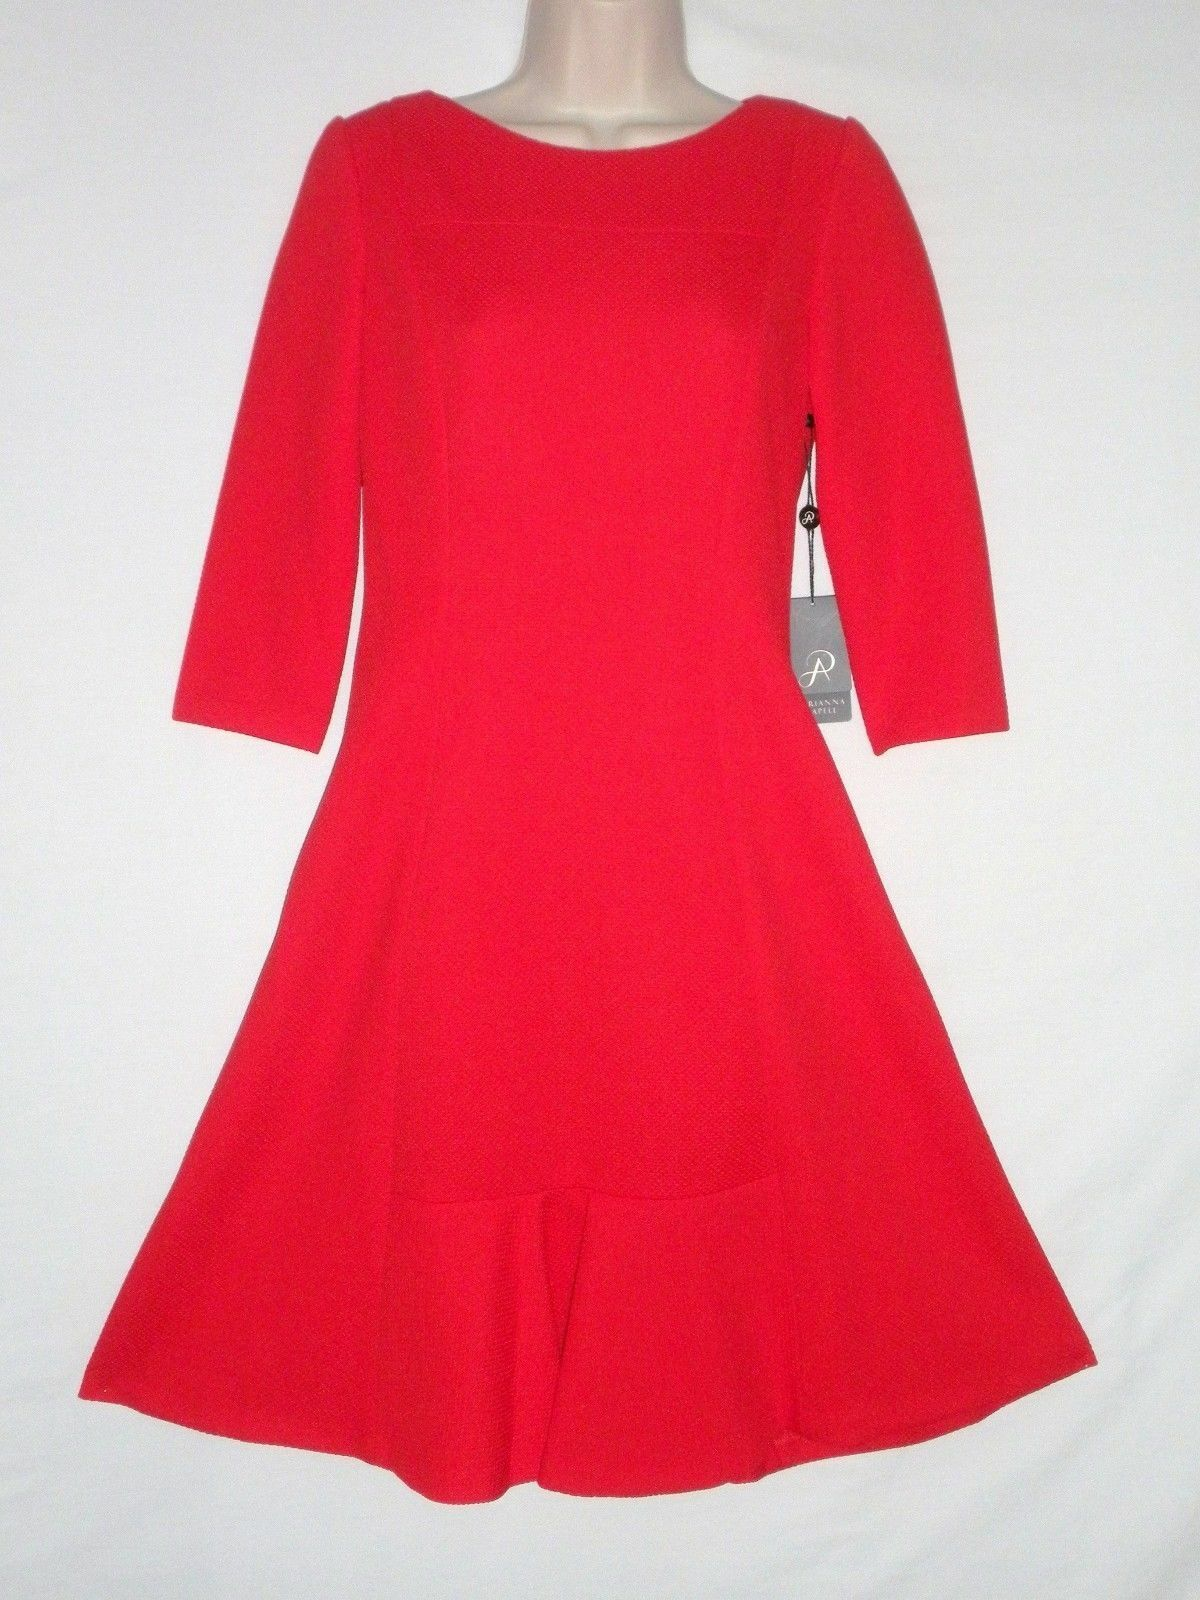 NWT  ADRIANNA PAPELL Novelty Textured Knit Flounce Dress, RED, Sizes 10 12